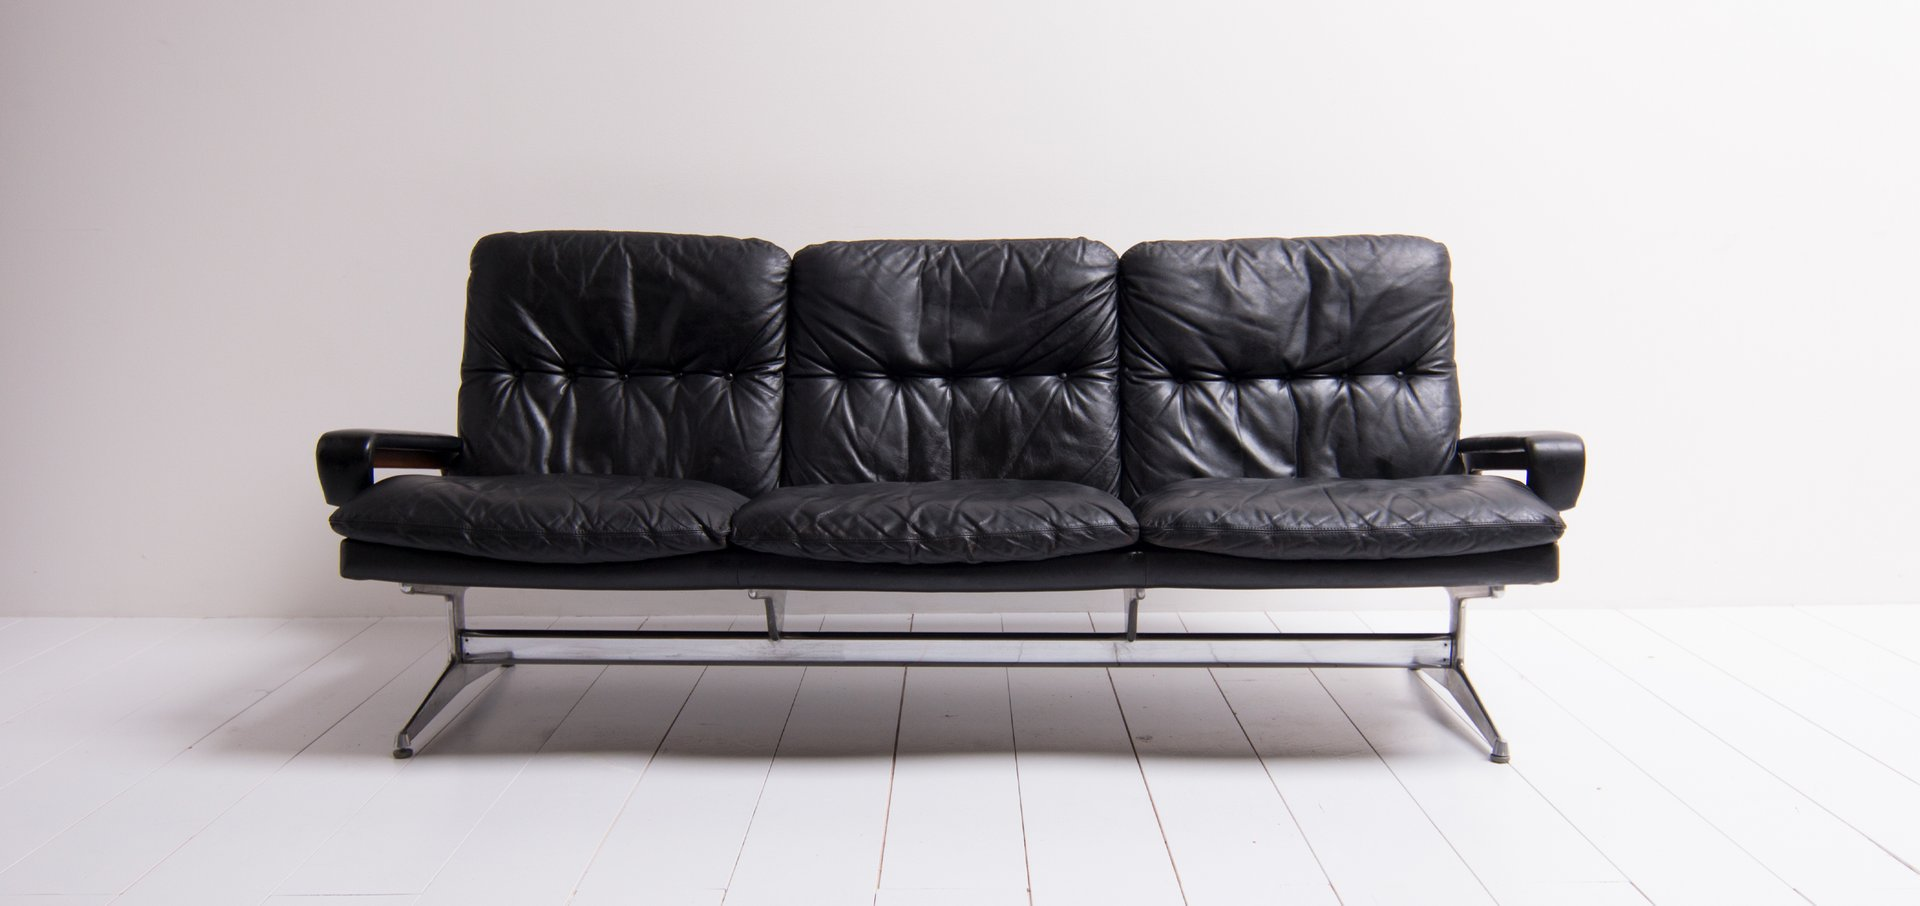 3 sitzer schlafsofa cheap sitzer schlafsofa in mnchen. Black Bedroom Furniture Sets. Home Design Ideas